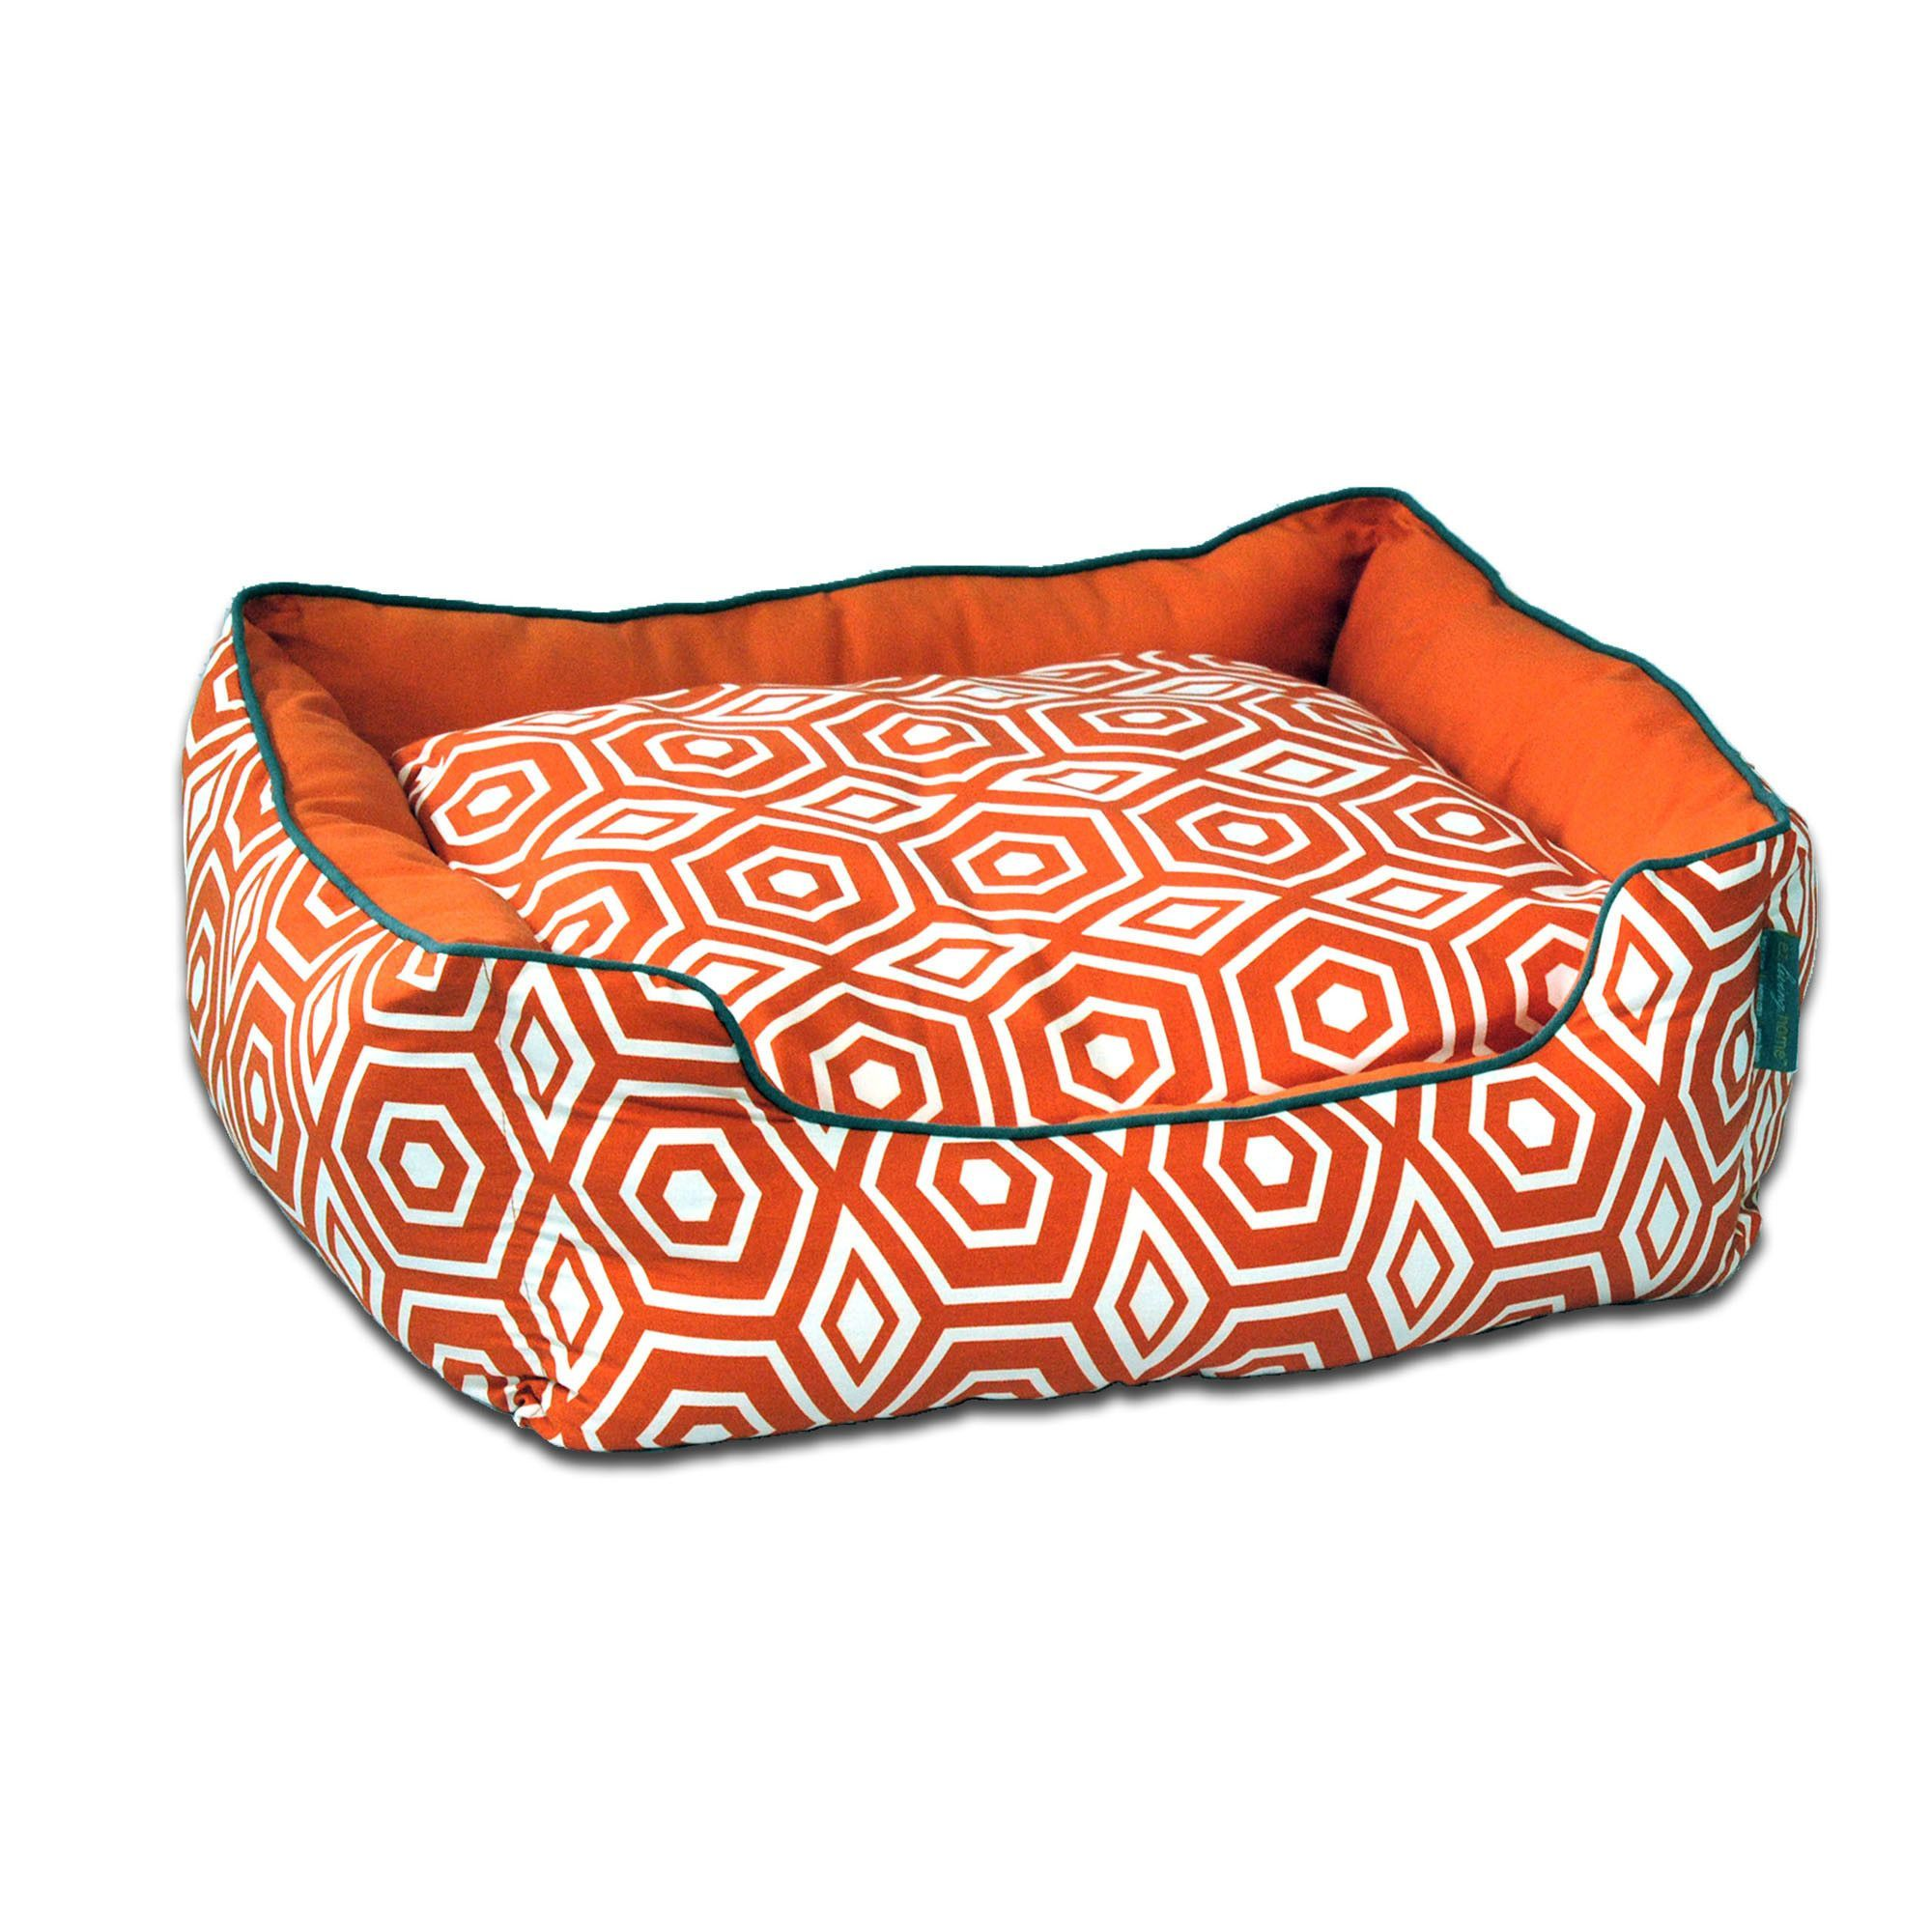 Couch Pet Bed Dog couch bed, Couch pet bed